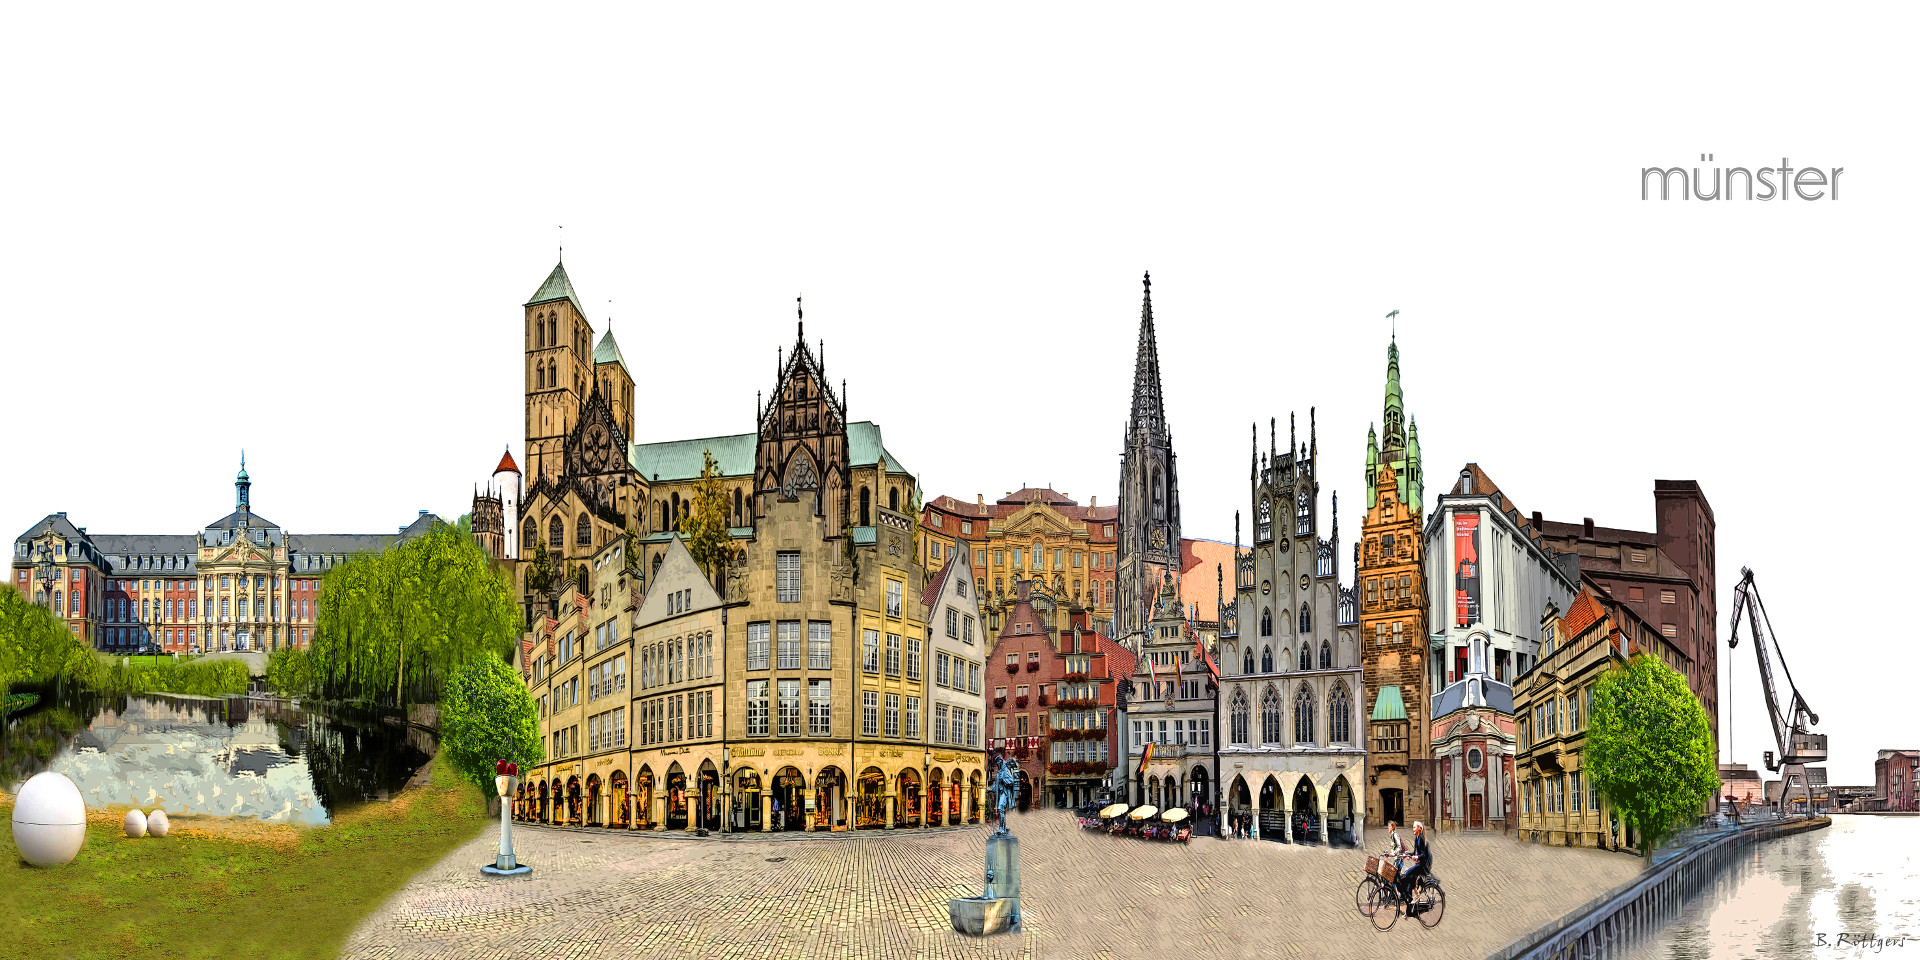 Collage Bilder Photo Art Muenster Collage | Artistic Collage Of Muenst's Landmarks - Artistic Images And Print-art